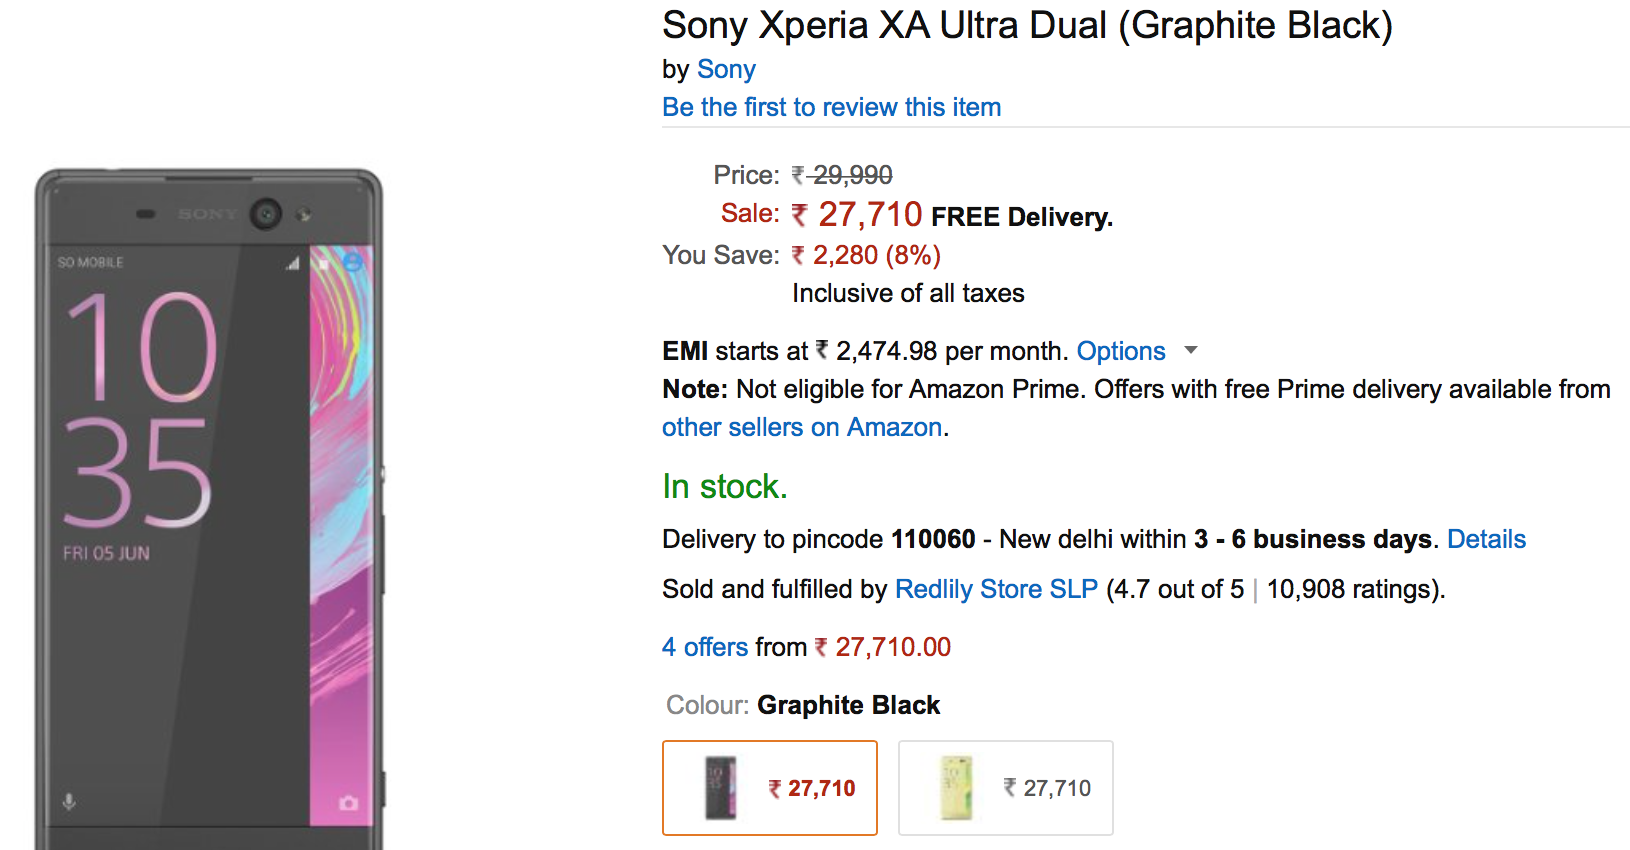 Xperia XA Ultra is available at Rs 27710 ($414) from Amazon India